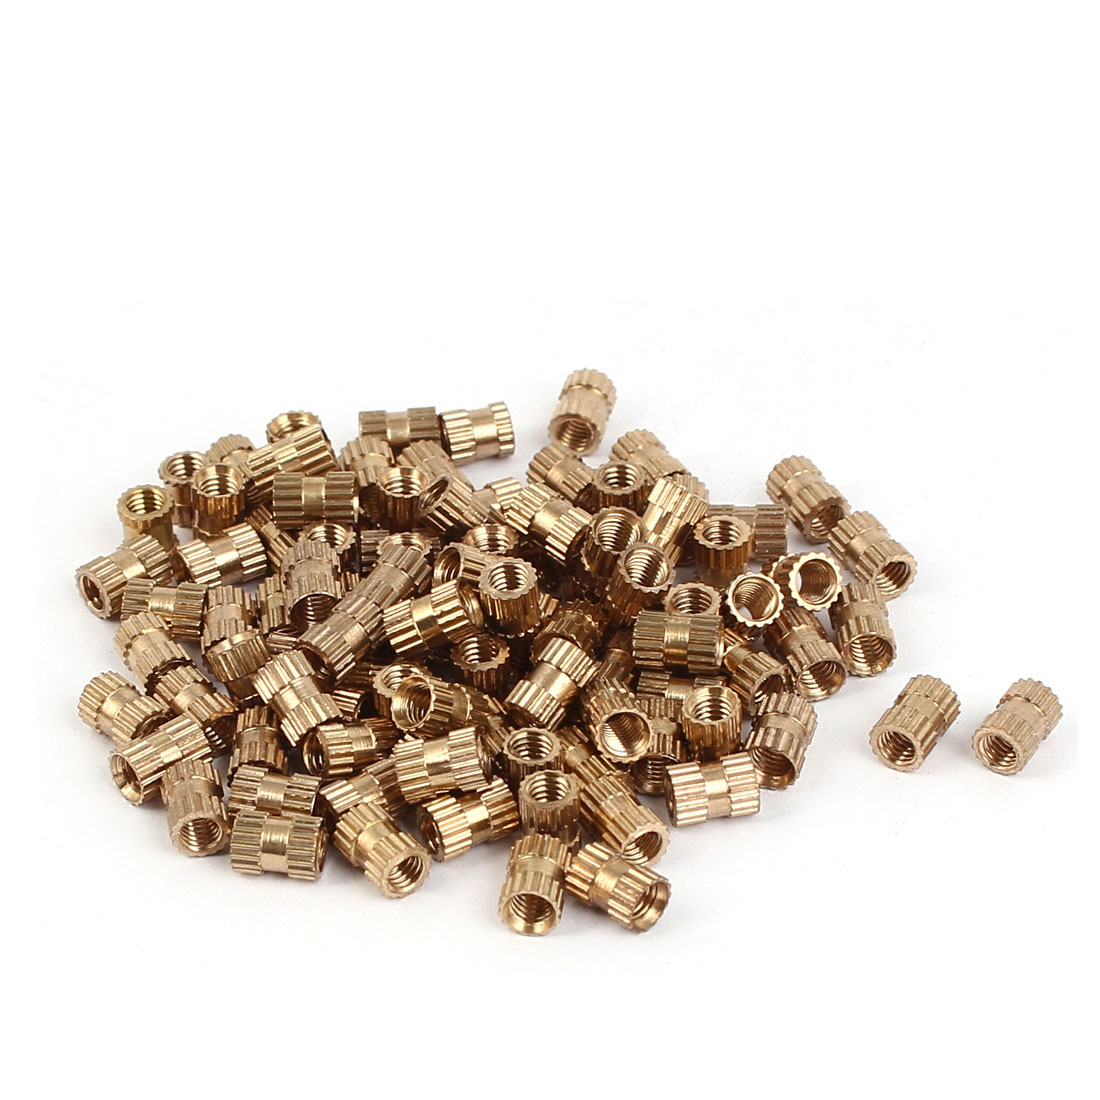 M3 x 6mm 0.5mm Pitch Brass Cylindrical Knurled Threaded Insert Nuts 100PCS